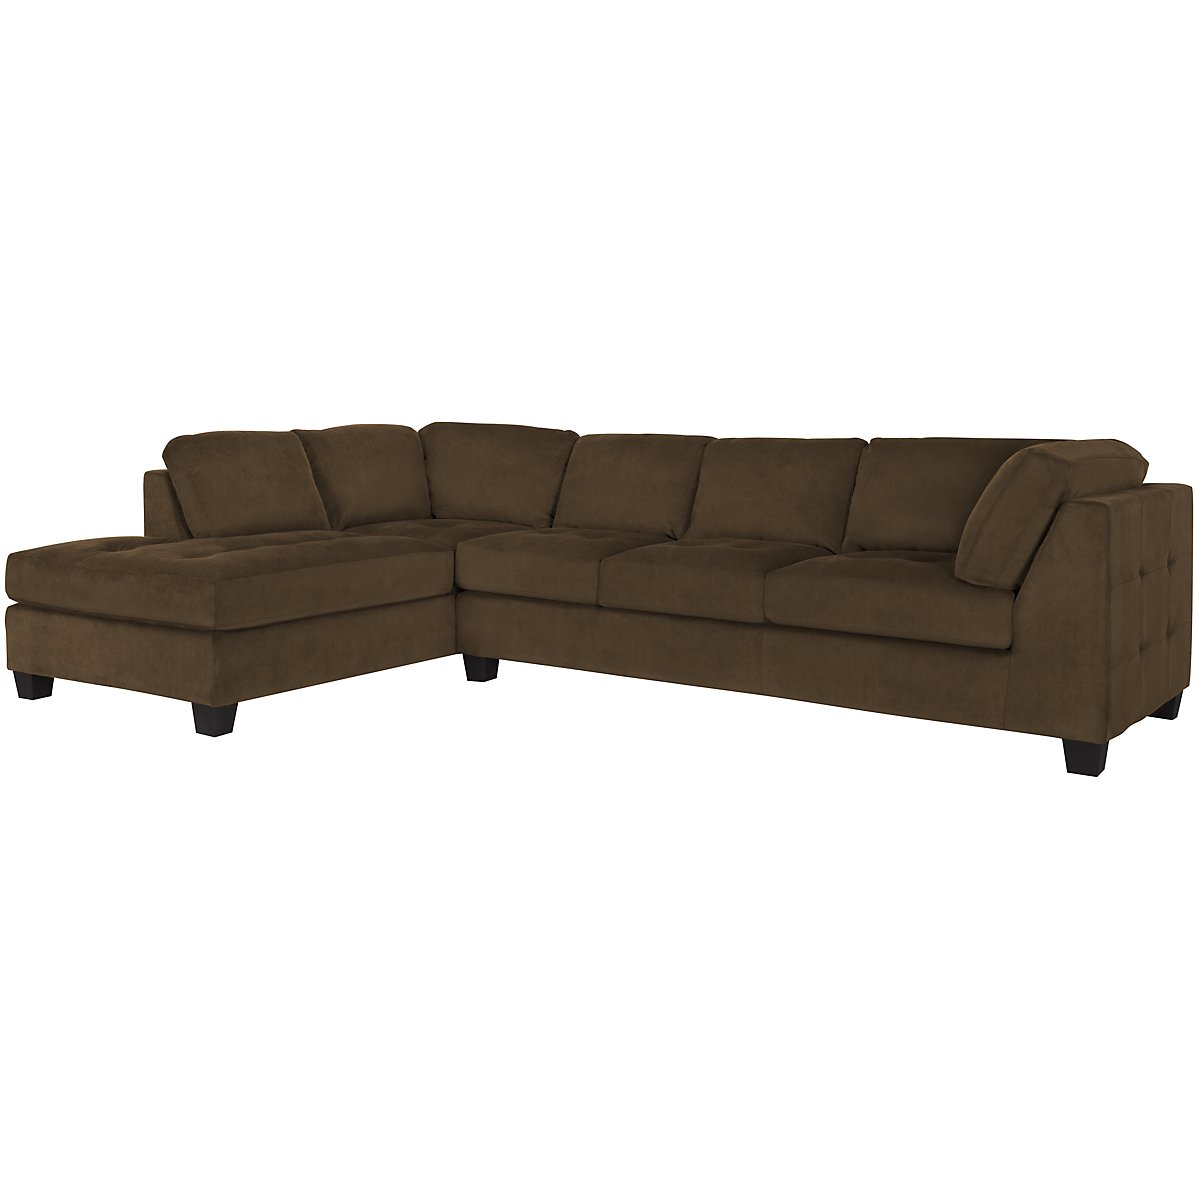 City Furniture Mercer2 Dk Brown Microfiber Left Chaise